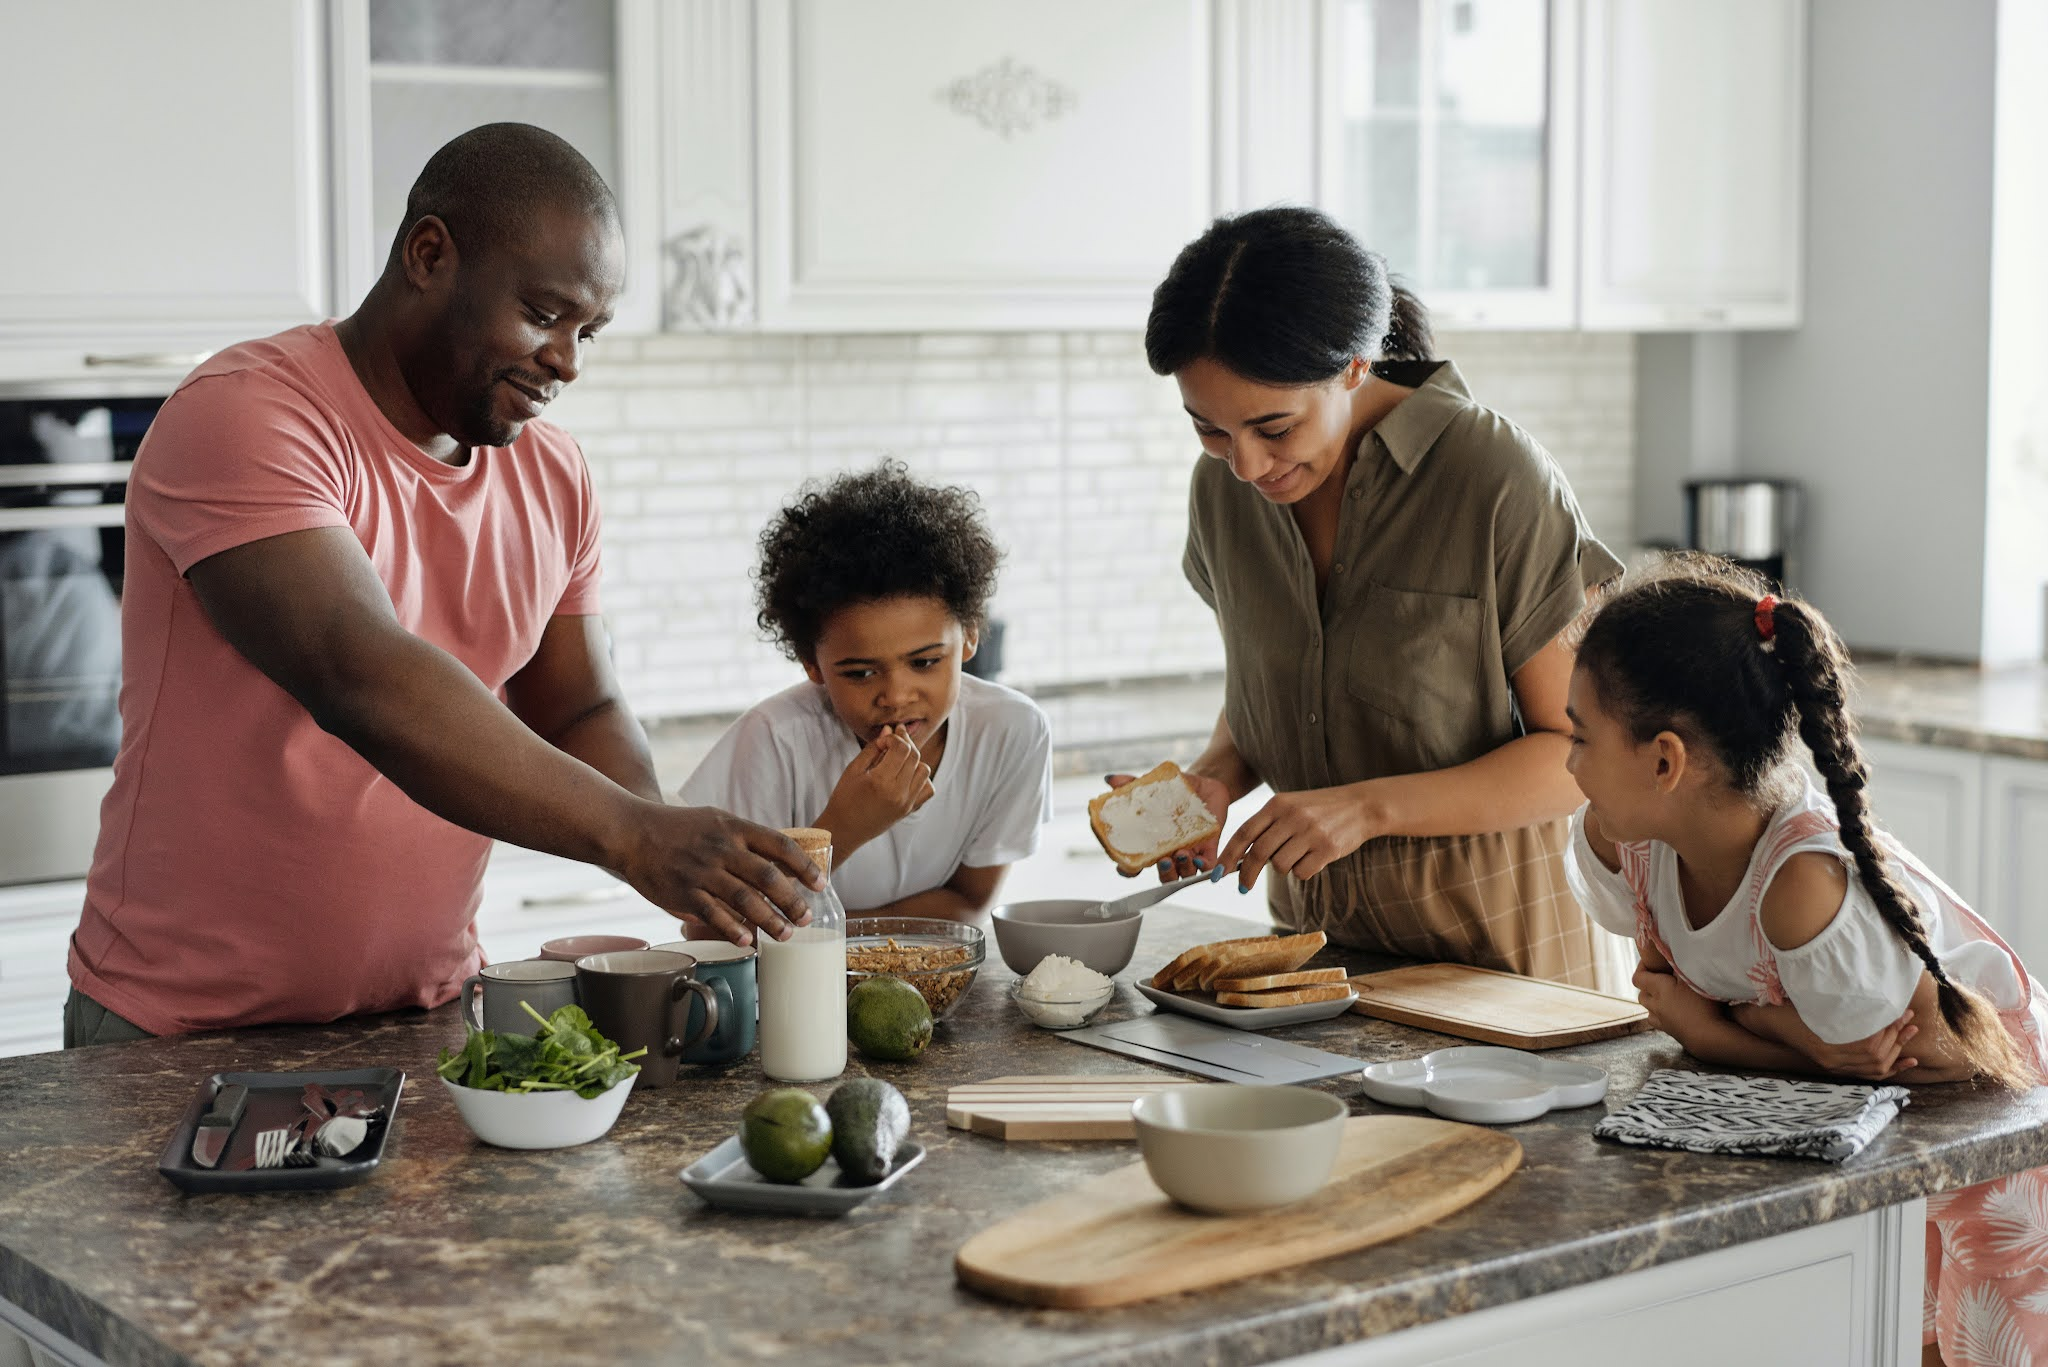 A family cooking together. Photo by August de Richelieu from Pexels